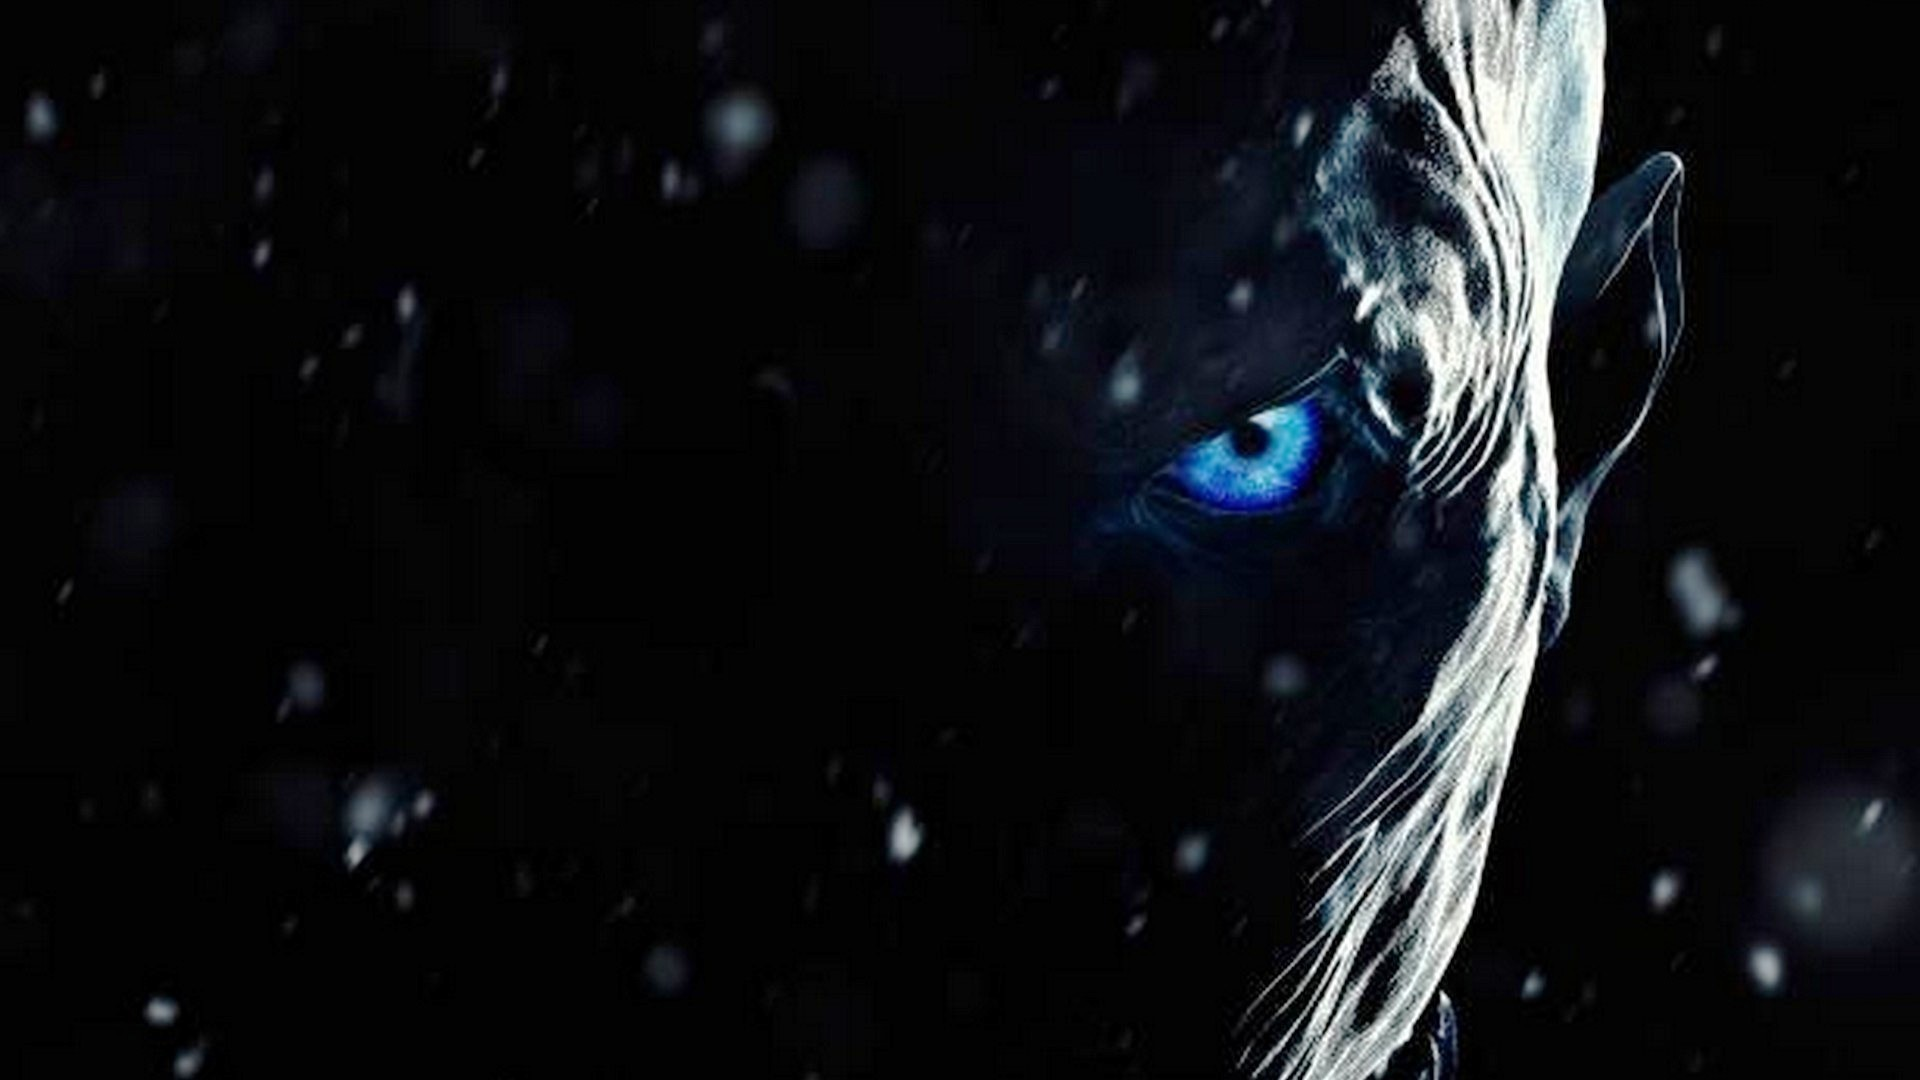 Game Of Thrones Wallpaper Movie With High-resolution - Game Of Thrones Phone - HD Wallpaper